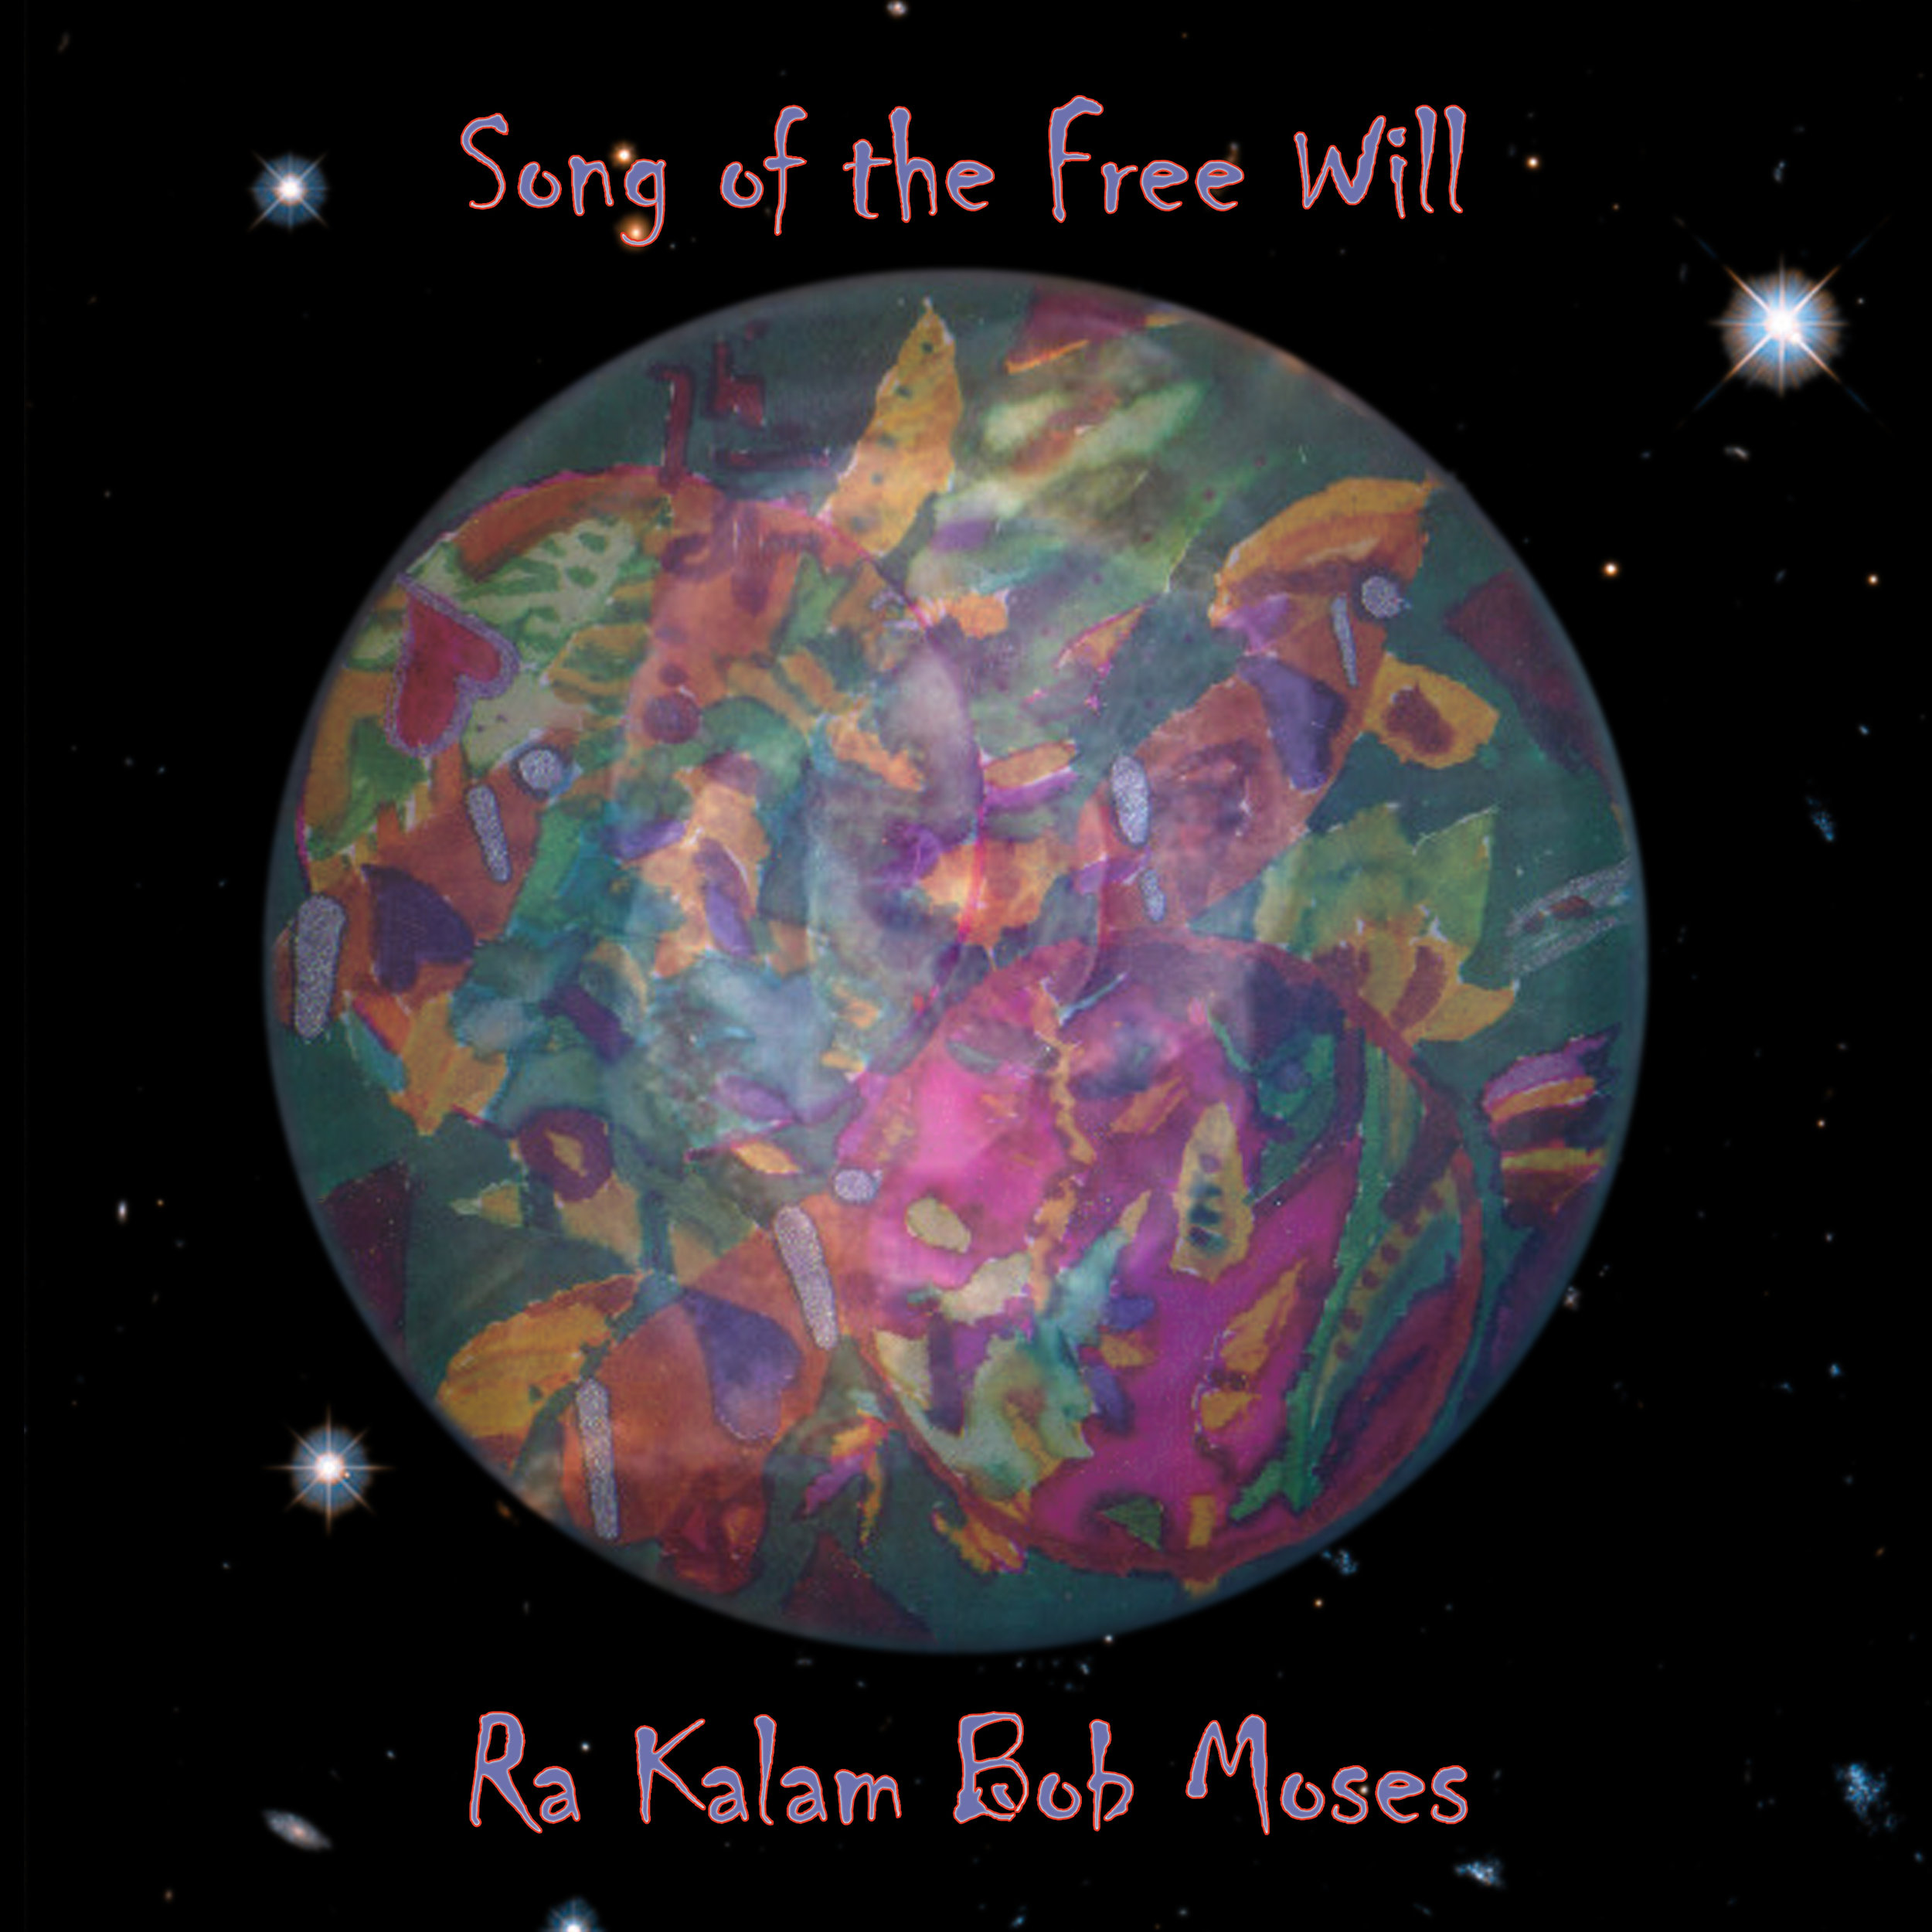 SONG OF THE FREE WILL    Compact Disc -    E-mail your order     Digital Downloads -    Amazon    -    iTunes     Release Date - 2016    Label - Ra Kalam Record    Ra Kalam - Piano, djembe, log drum, pans, bass, vocal, sonic beds    Sadhu Bhav Tony Falco - Drums    John Lockwood - Bass    Stan Strickland - Tenor sax, bass clarinet, fute, alto flute, bass flute, vocals    Vivek Patel - Trumpet    Mark Zaleski - Alto sax     SAMPLE